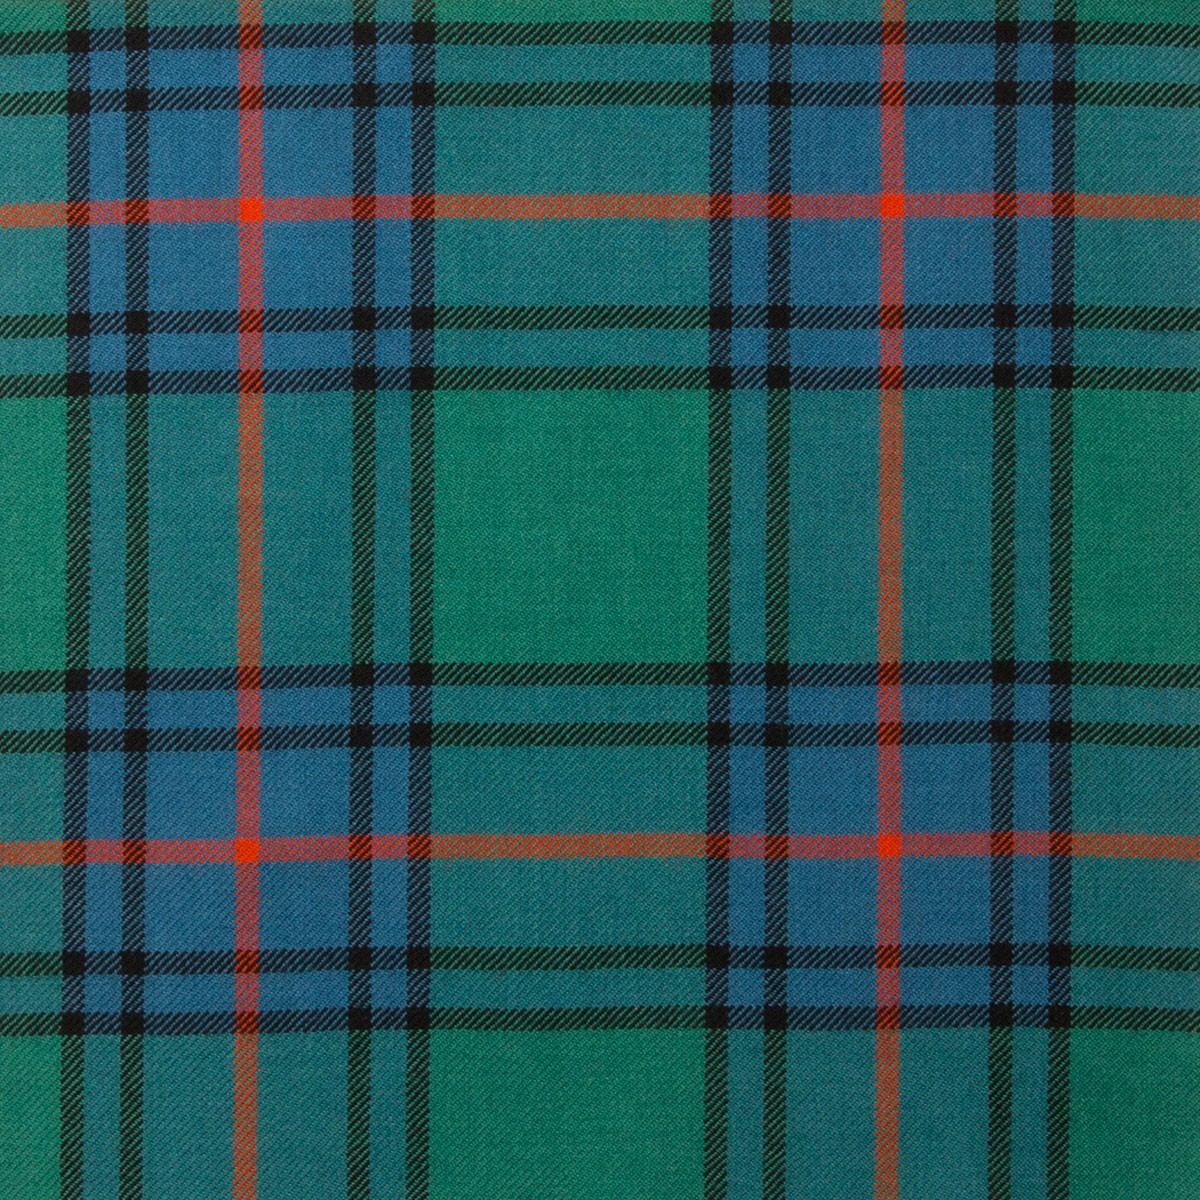 Shaw Green Ancient Tartan Fabric